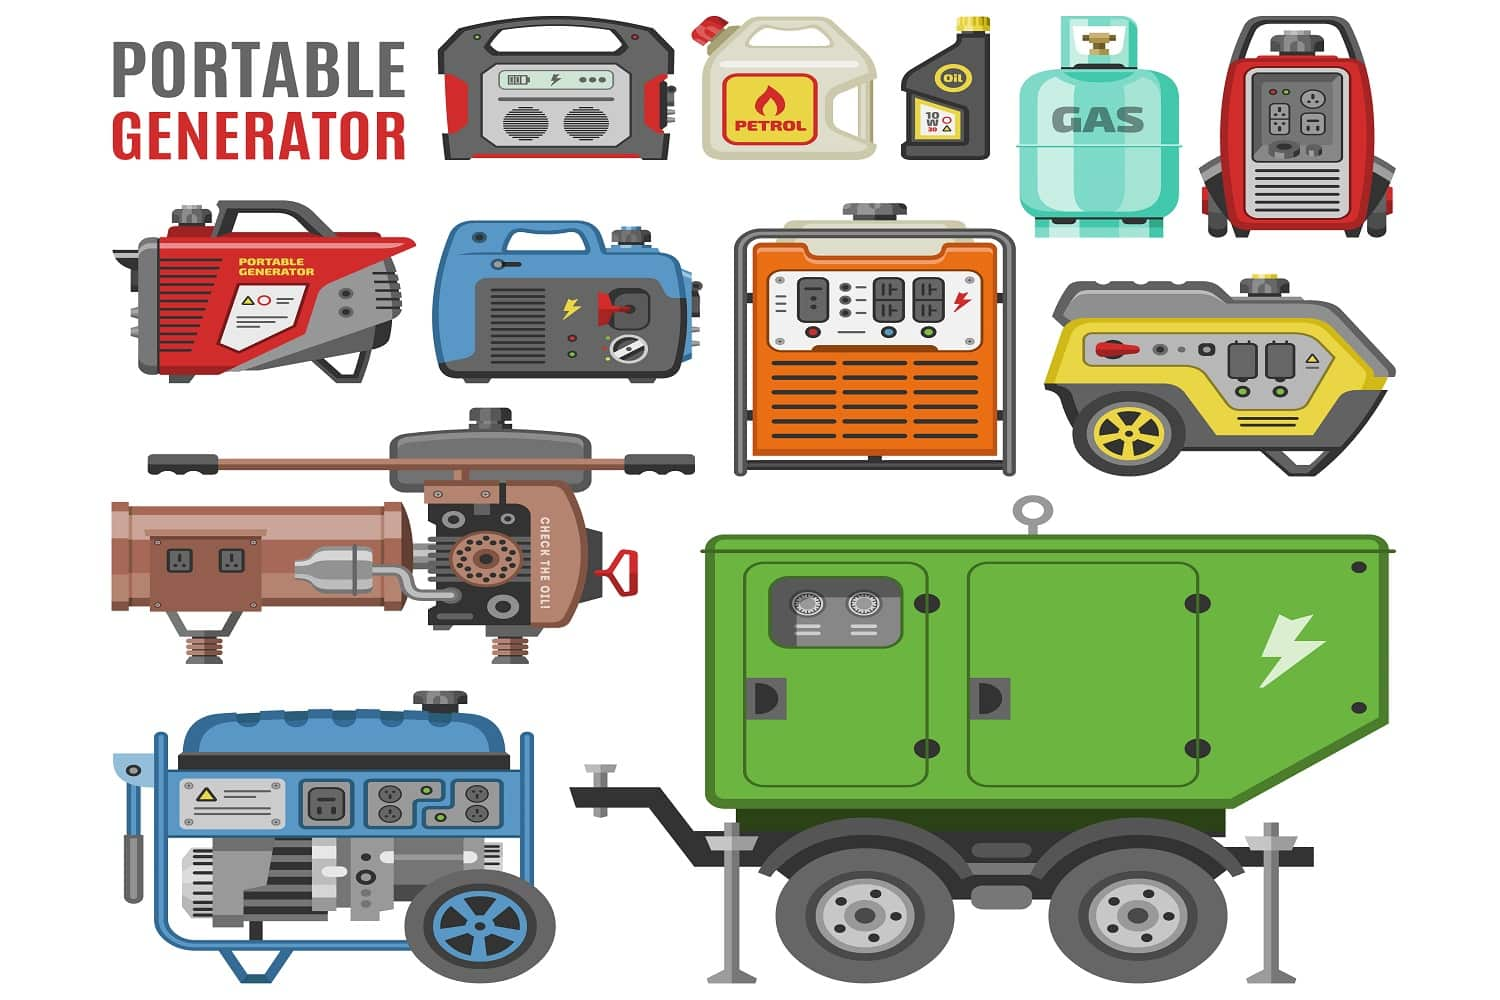 Generator vector power generating portable diesel fuel energy industrial electrical engine equipment illustration set of electric gas industry isolated on white background.